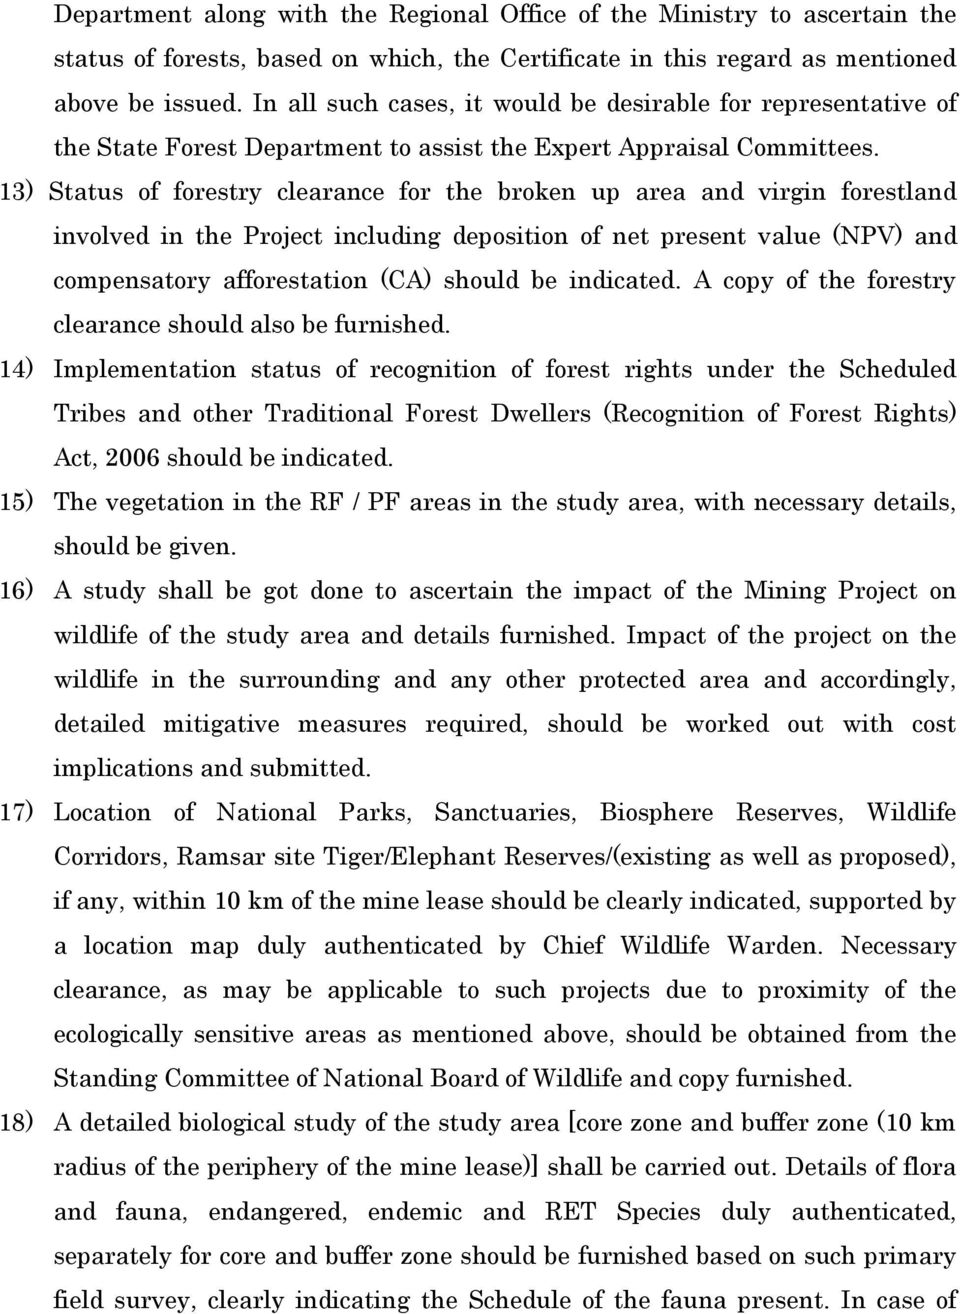 13) Status of forestry clearance for the broken up area and virgin forestland involved in the Project including deposition of net present value (NPV) and compensatory afforestation (CA) should be